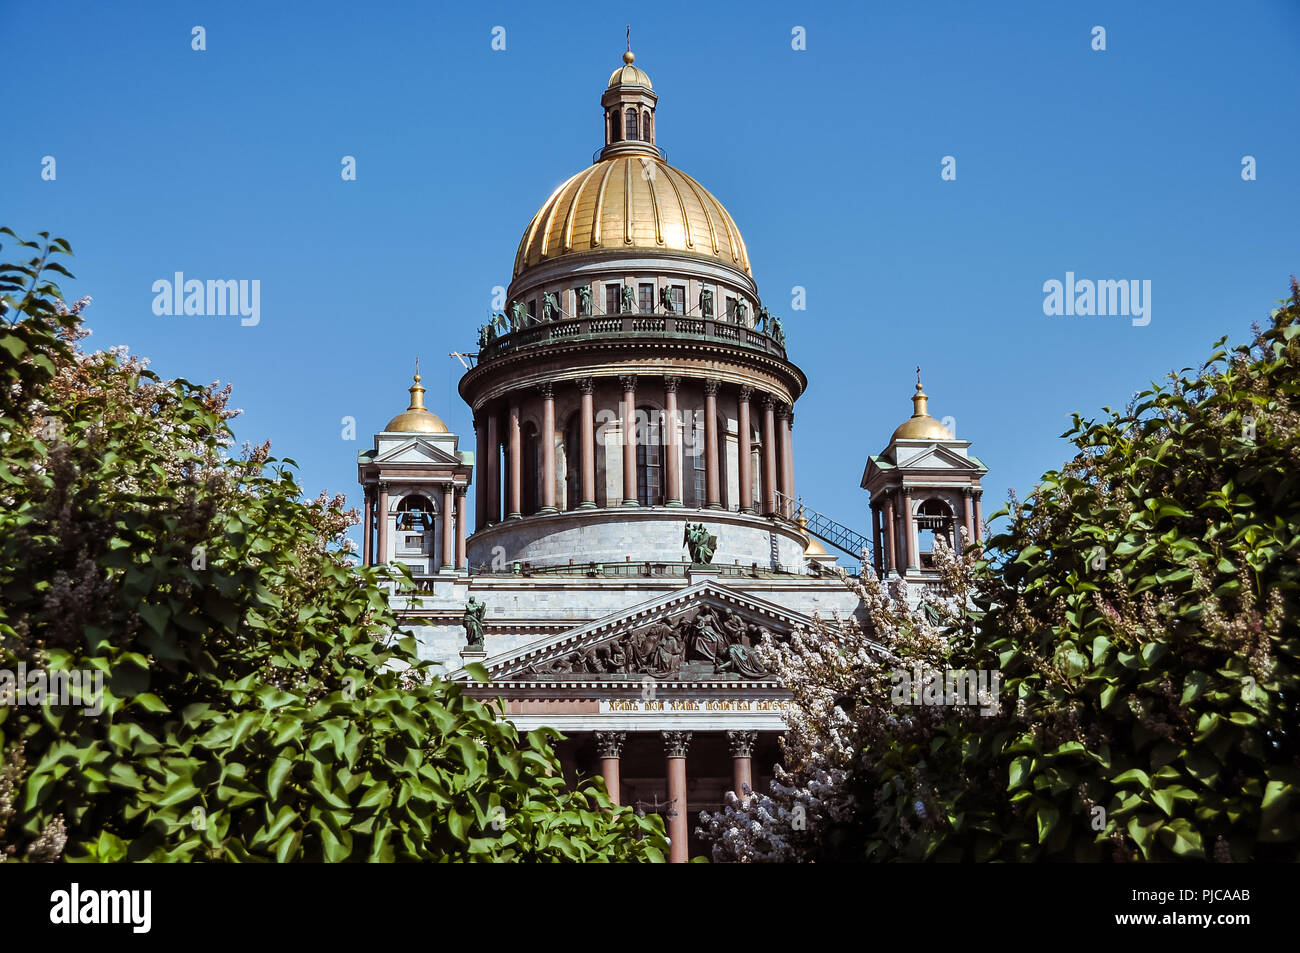 Dome of the St. Isaac Cathedral - St. Petersburg, Russia - Stock Image